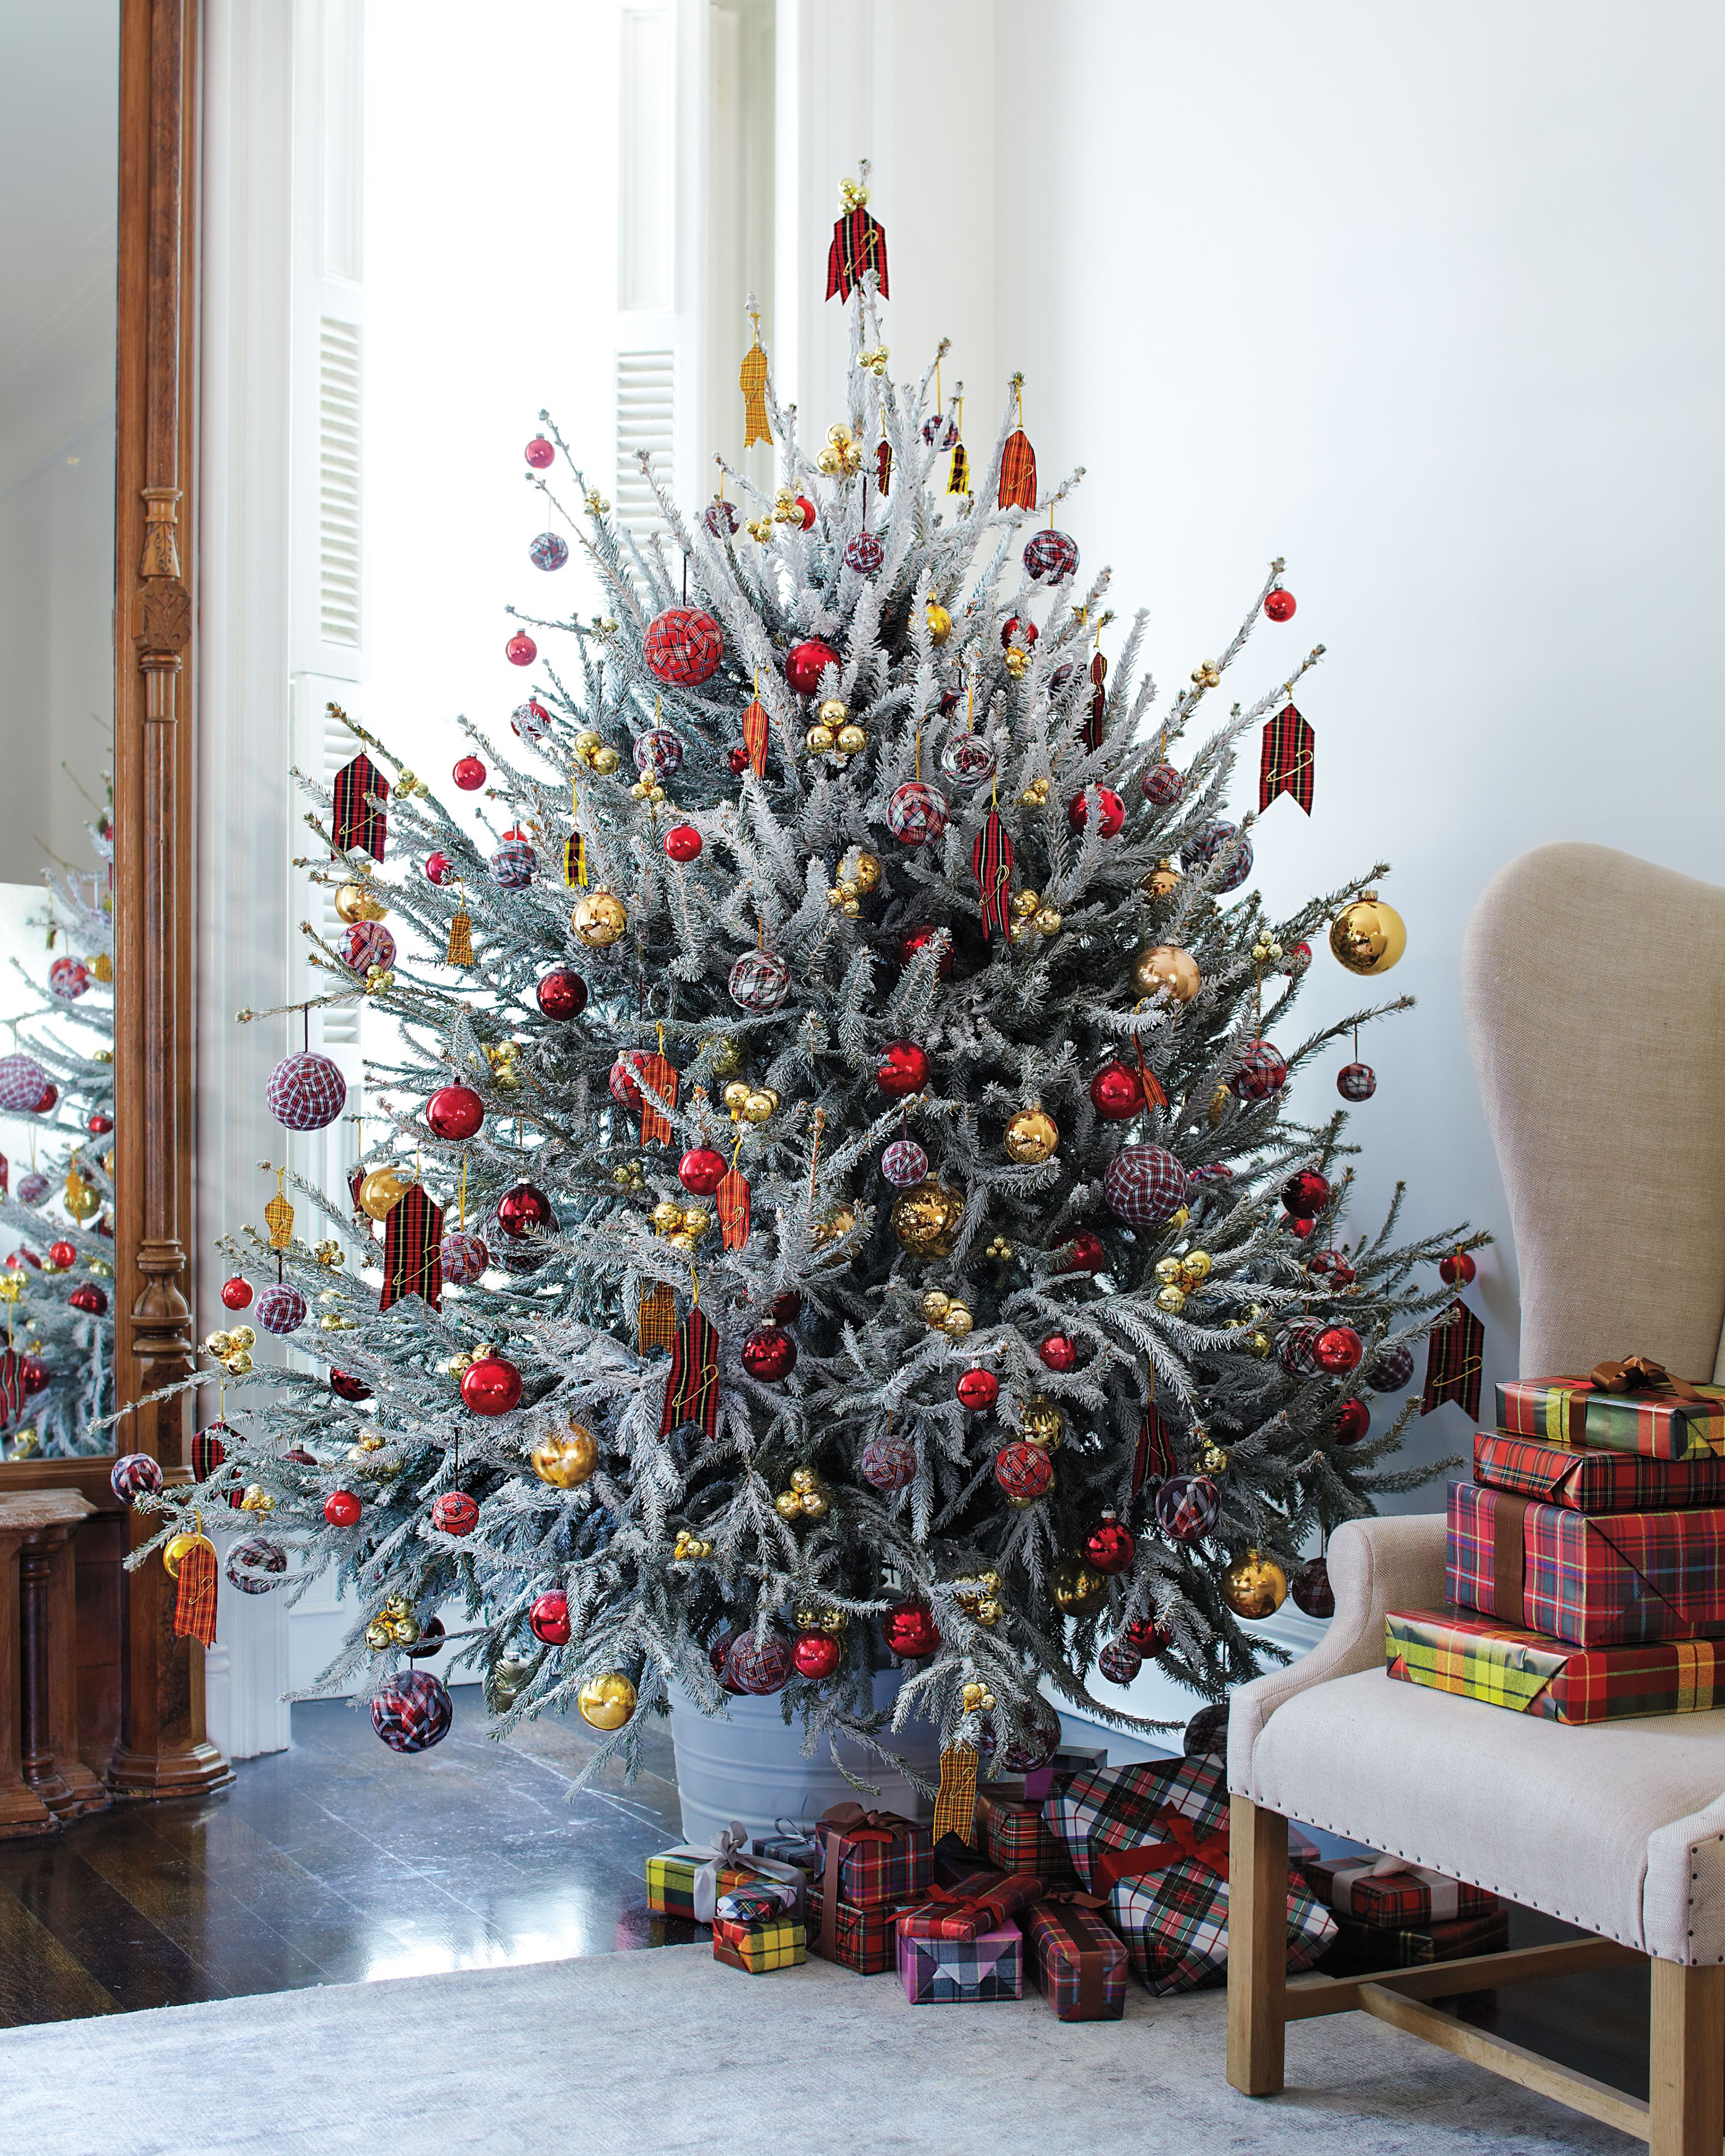 Christmas Trees Make It Sparkle Make It Your Own Christmas Decor Diy Creative Christmas Trees Christmas Diy